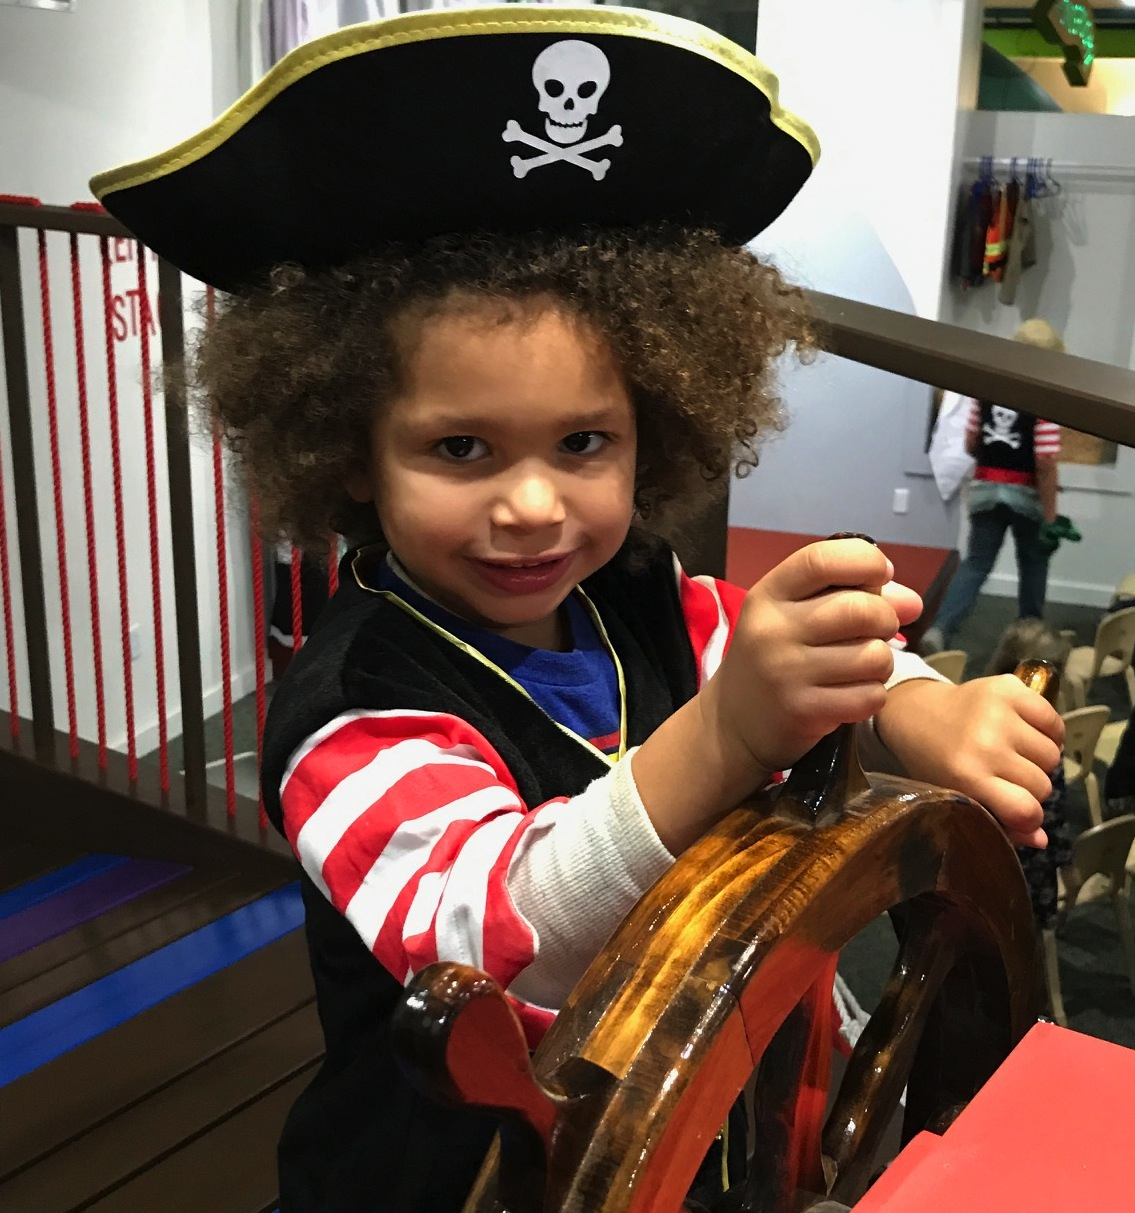 Child in pirate costume at the helm of pirate ship